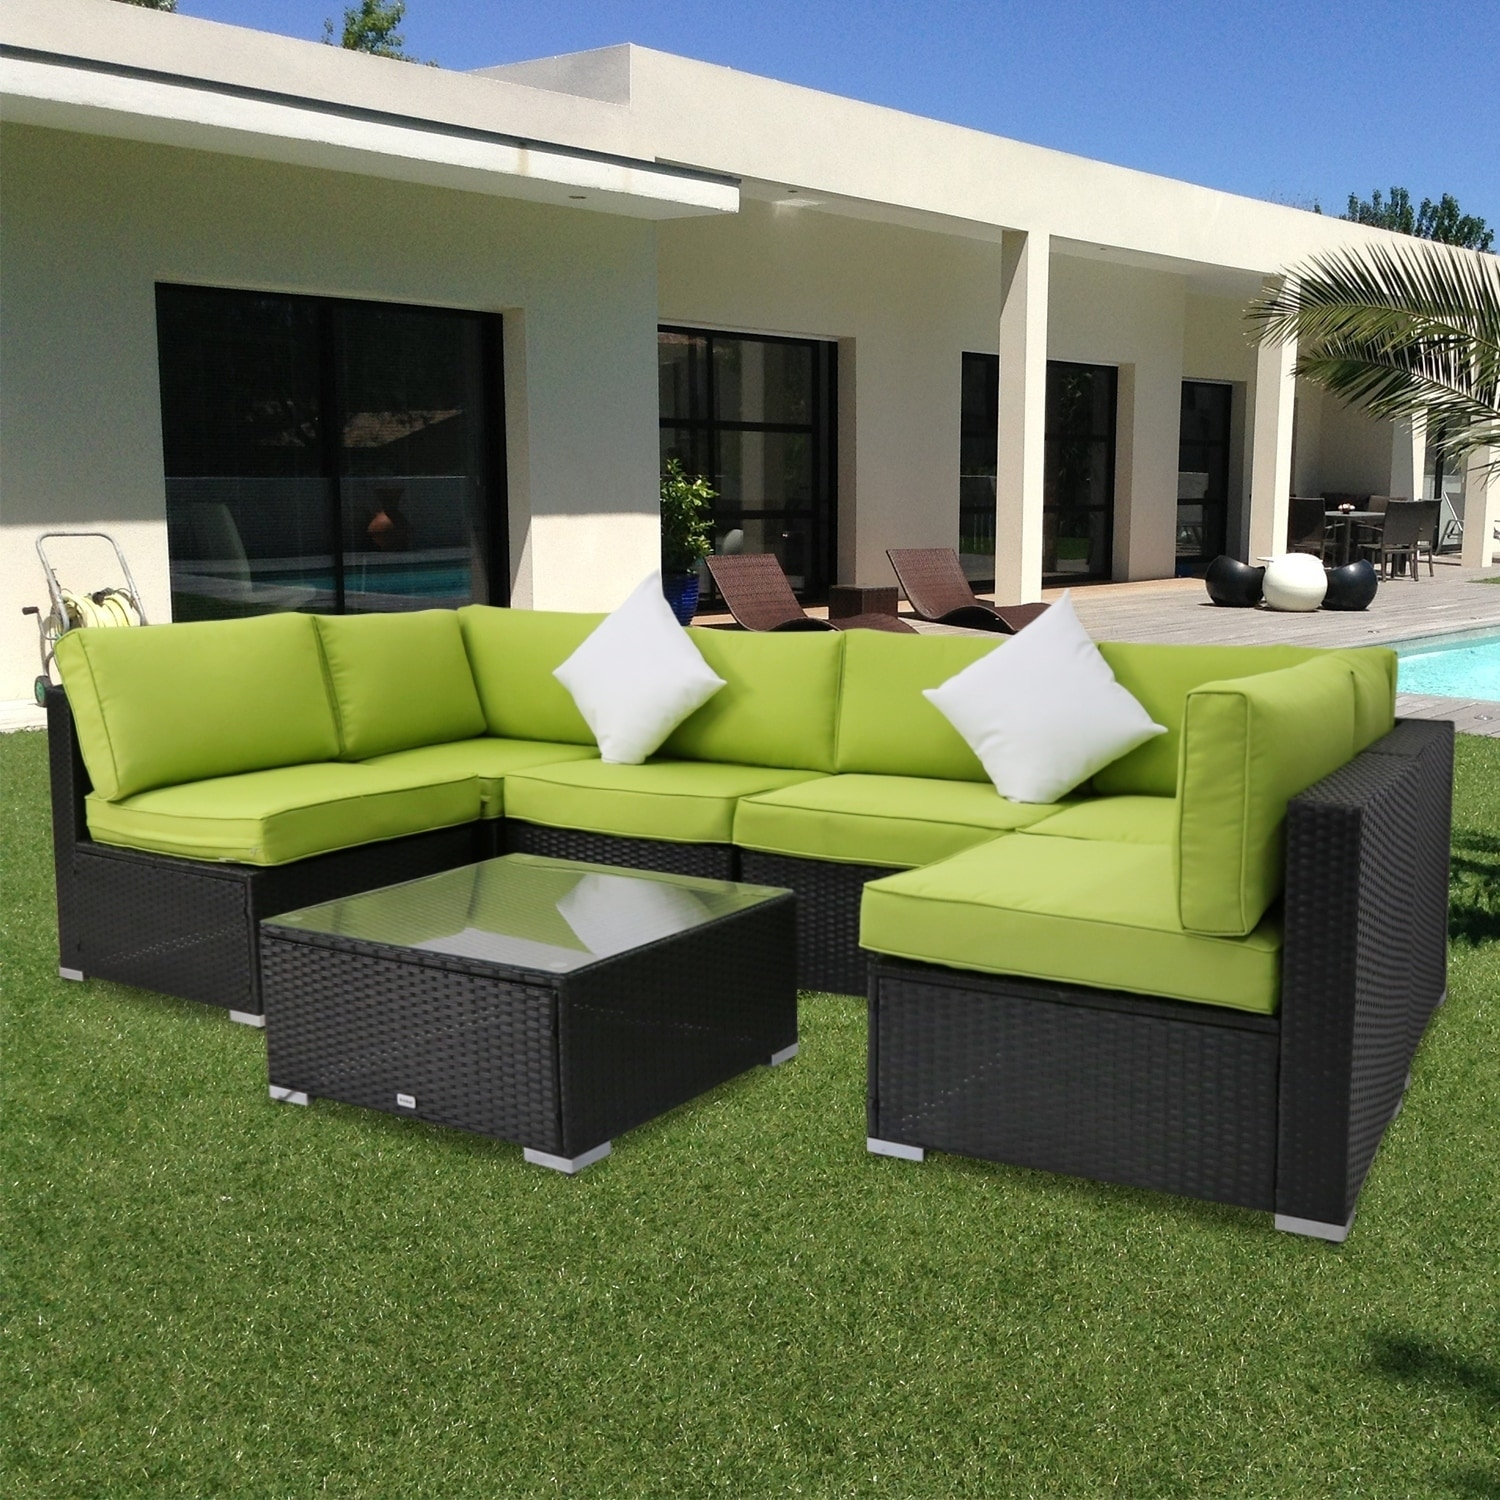 Shop kinbor 7 pcs all weather outdoor furniture patio sectional furniture set cushioned rattan wicker sofa set ships to canada overstock ca 22821744